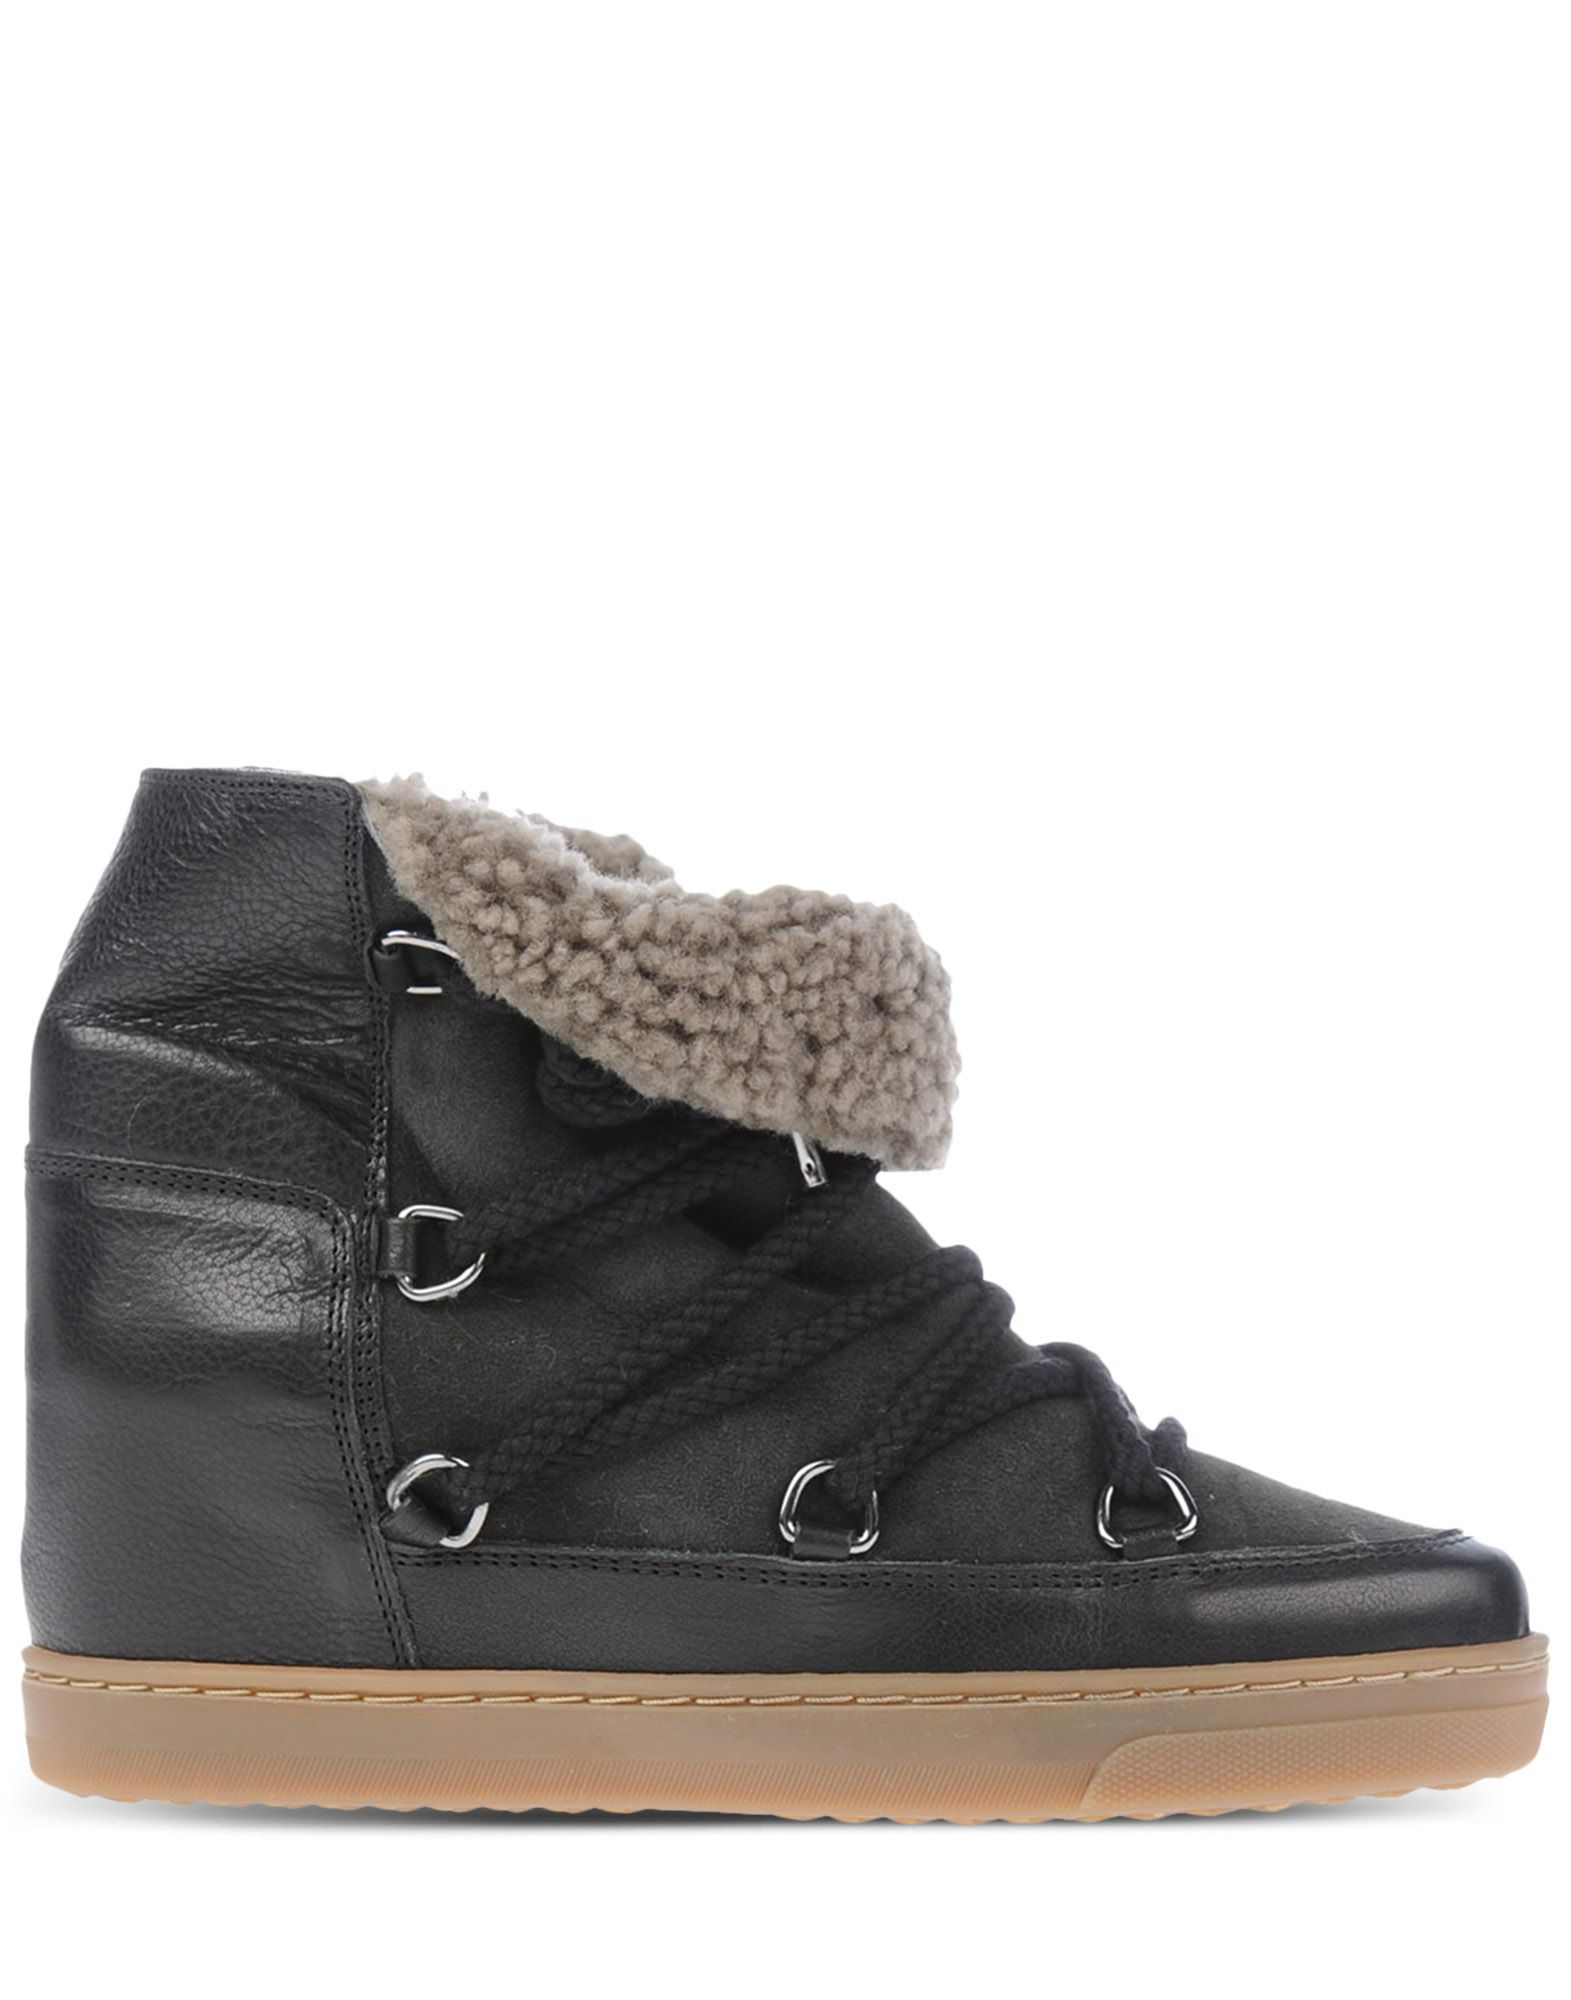 toile isabel marant shearling lace up boots in black lyst. Black Bedroom Furniture Sets. Home Design Ideas